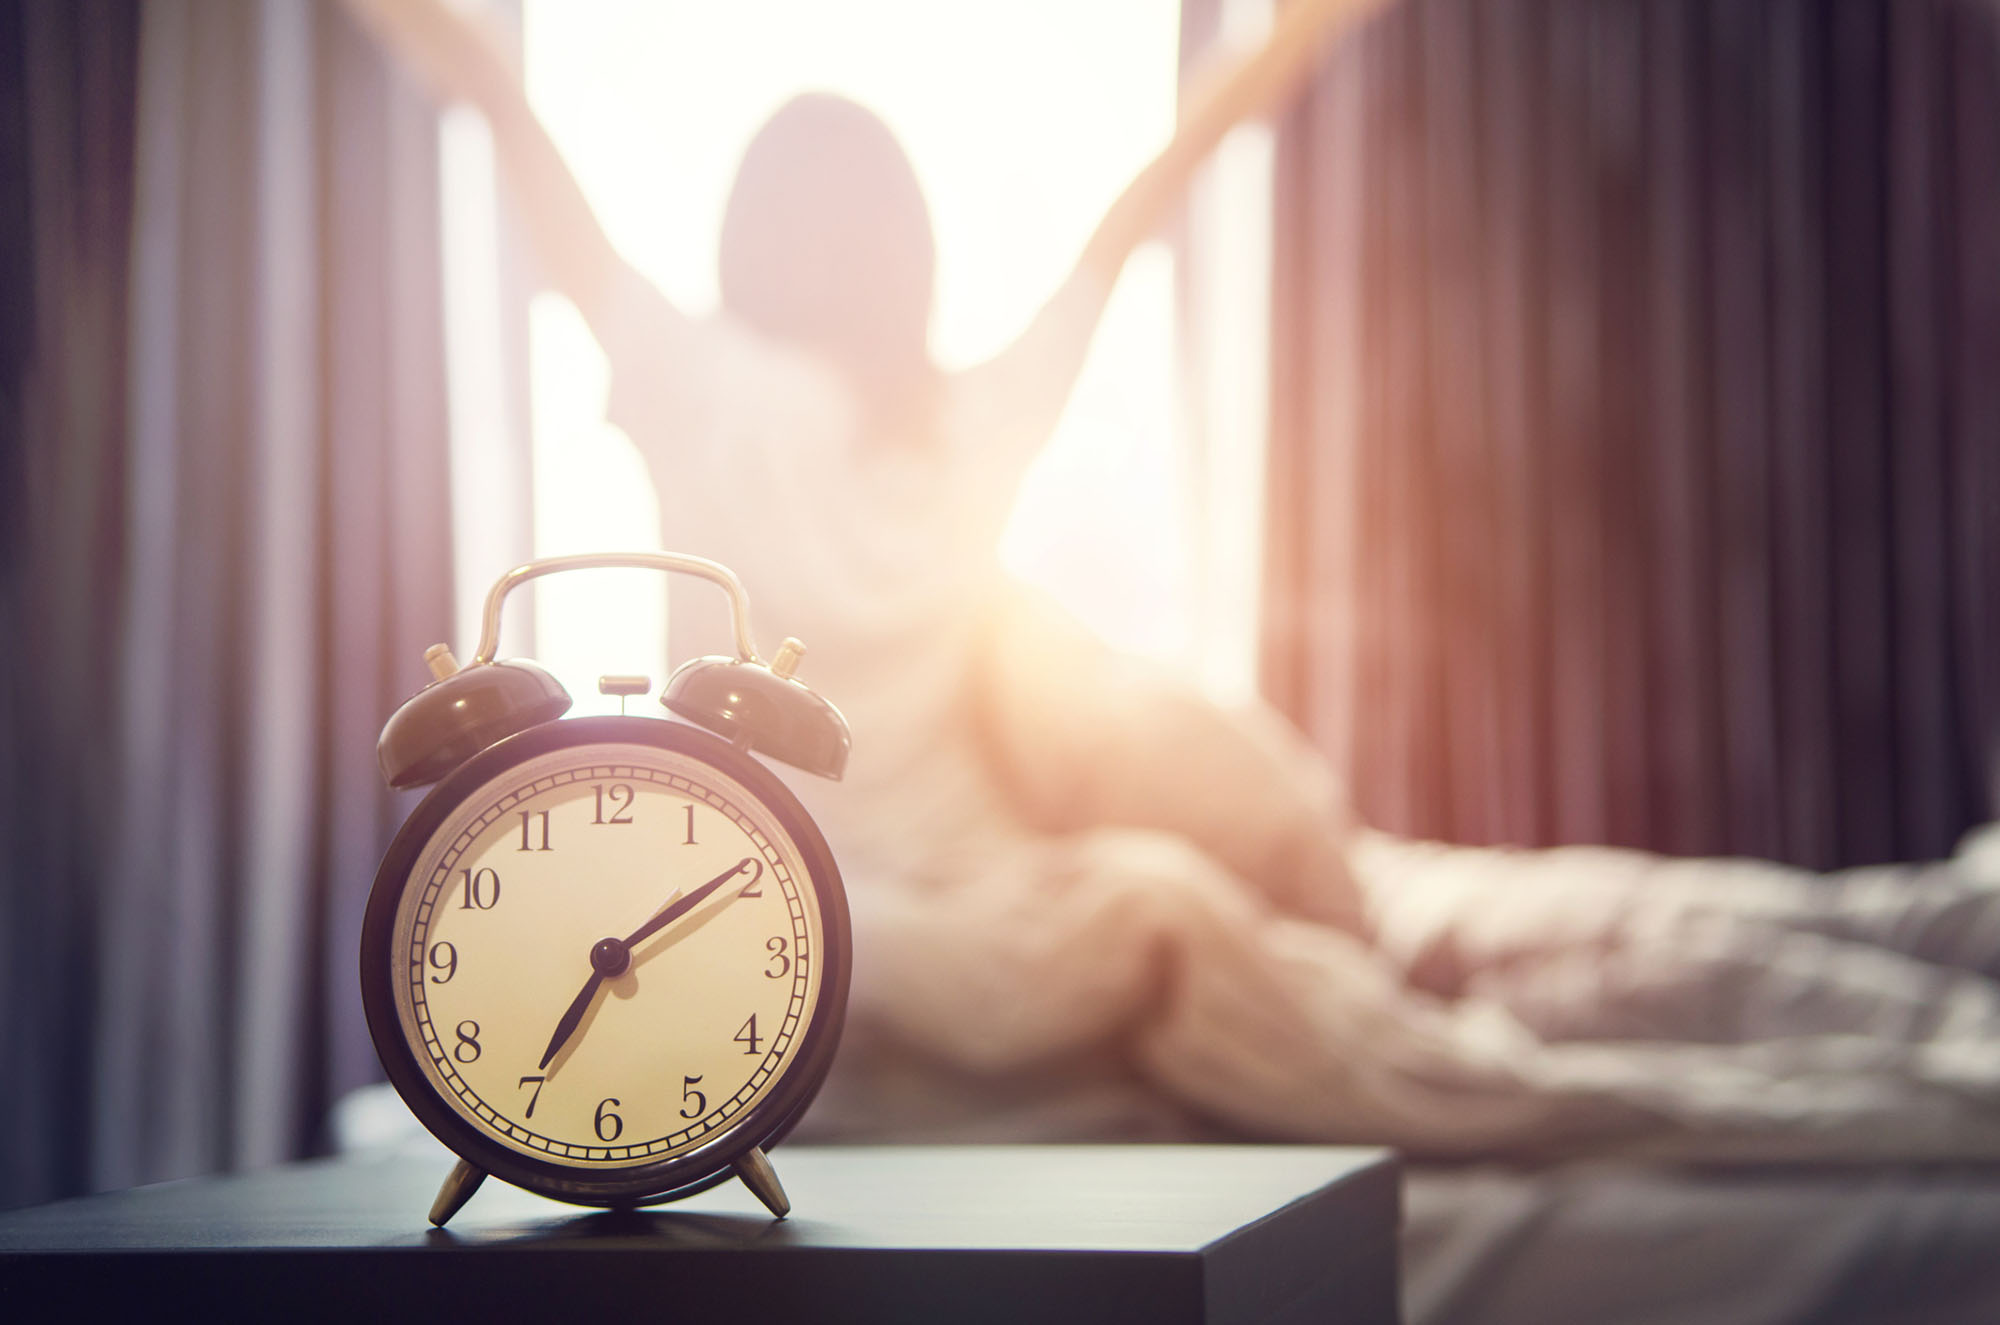 Develop a 10-minute daily routine to improve sleep